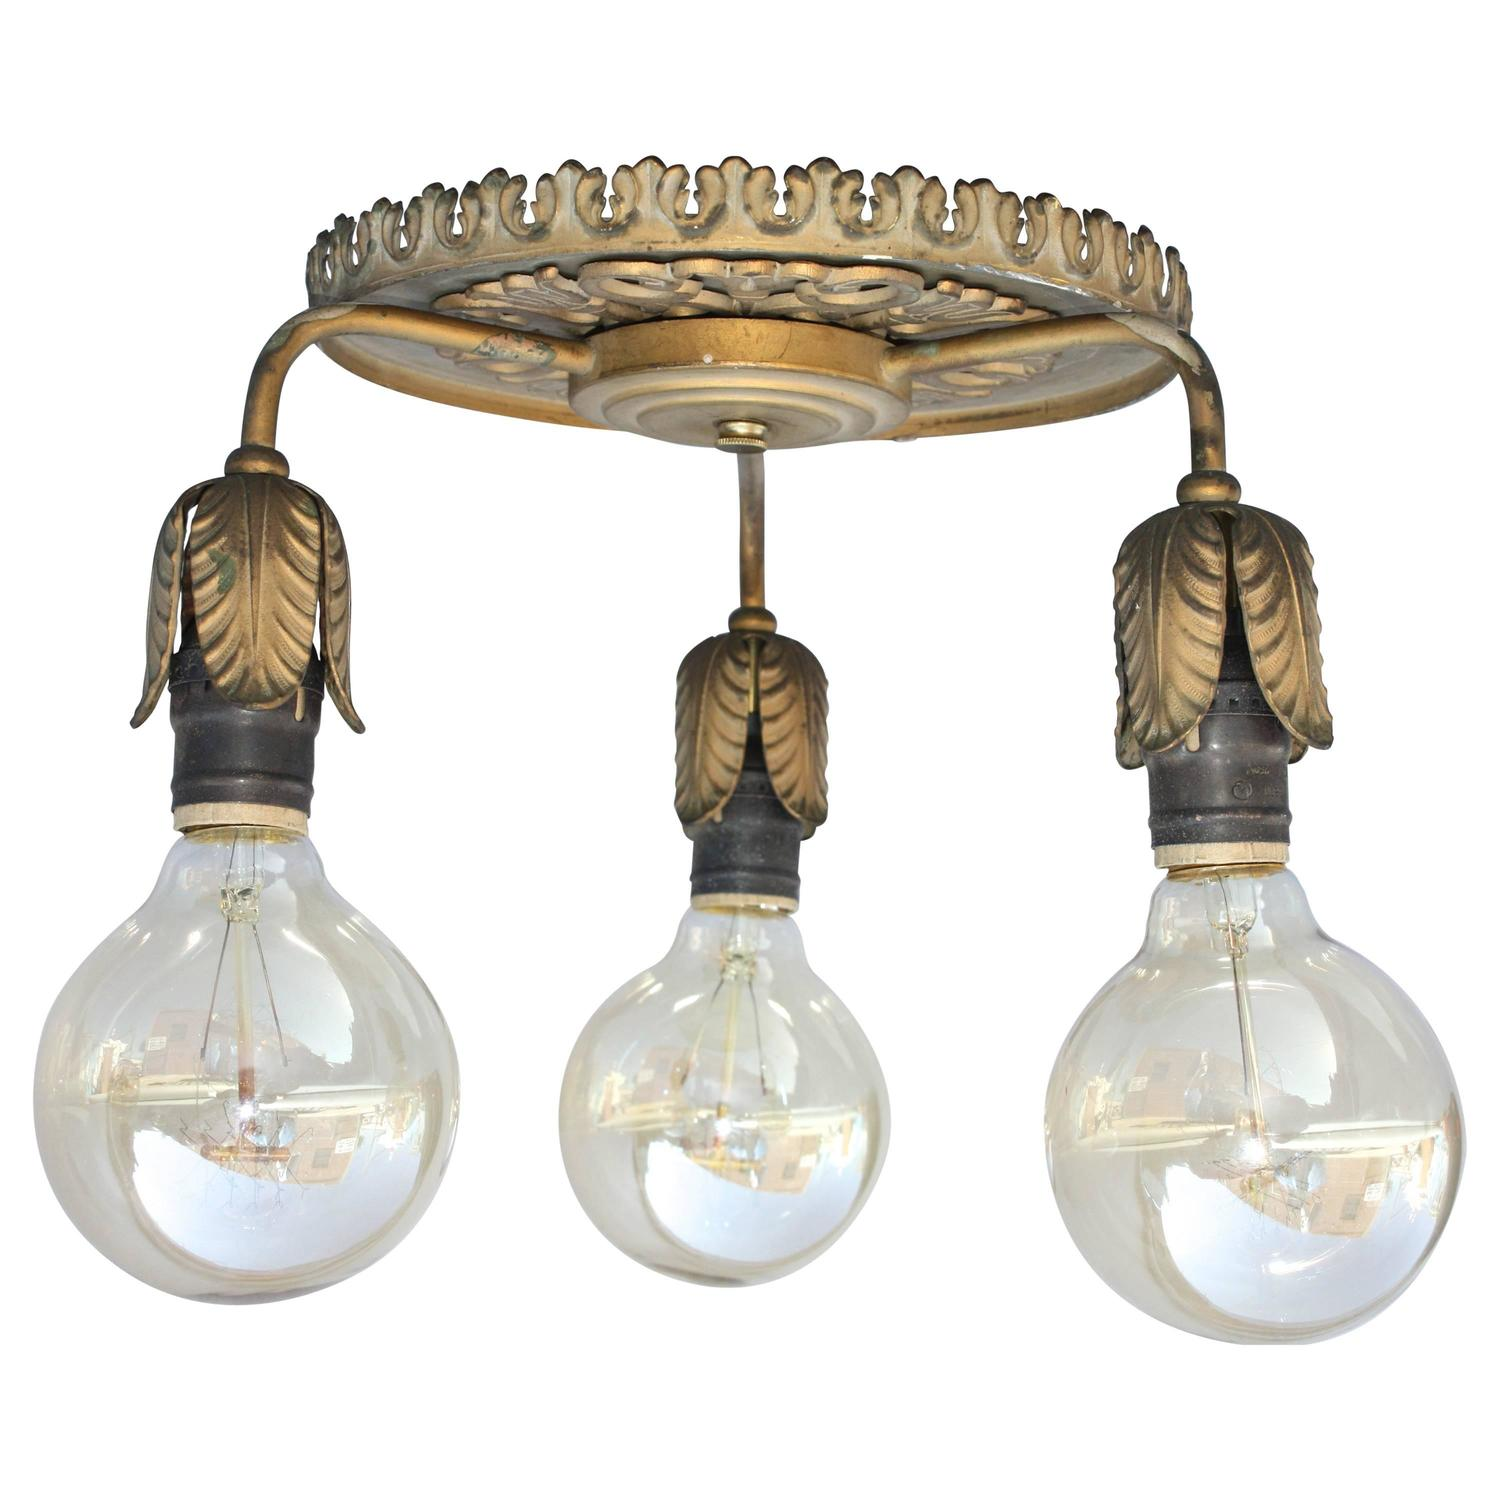 1920s Three Light Ceiling Fixture Spanish Revival At 1stdibs